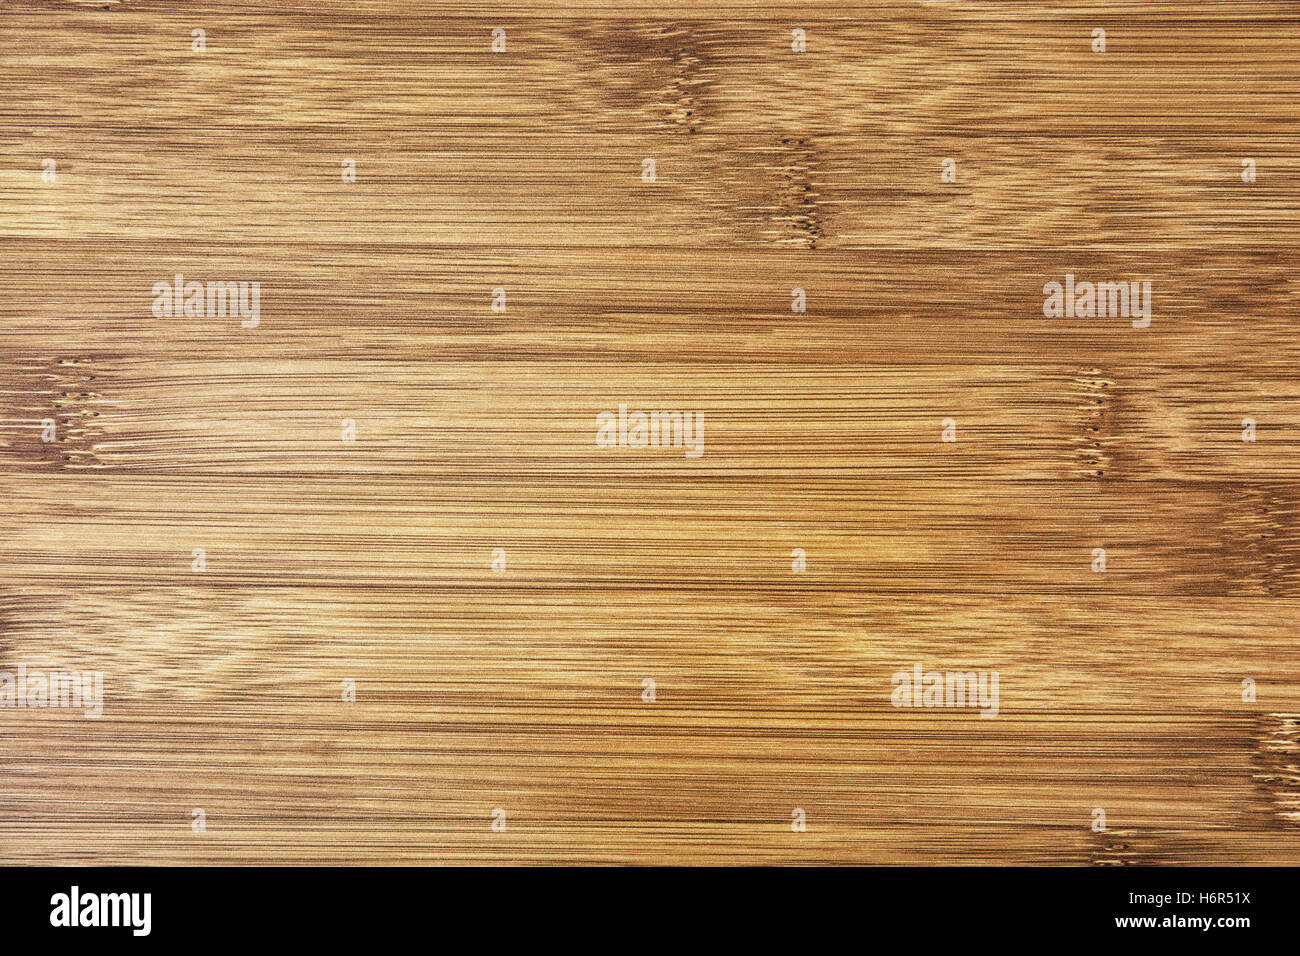 Wooden texture background. Wood industry. Graphic resource. - Stock Image